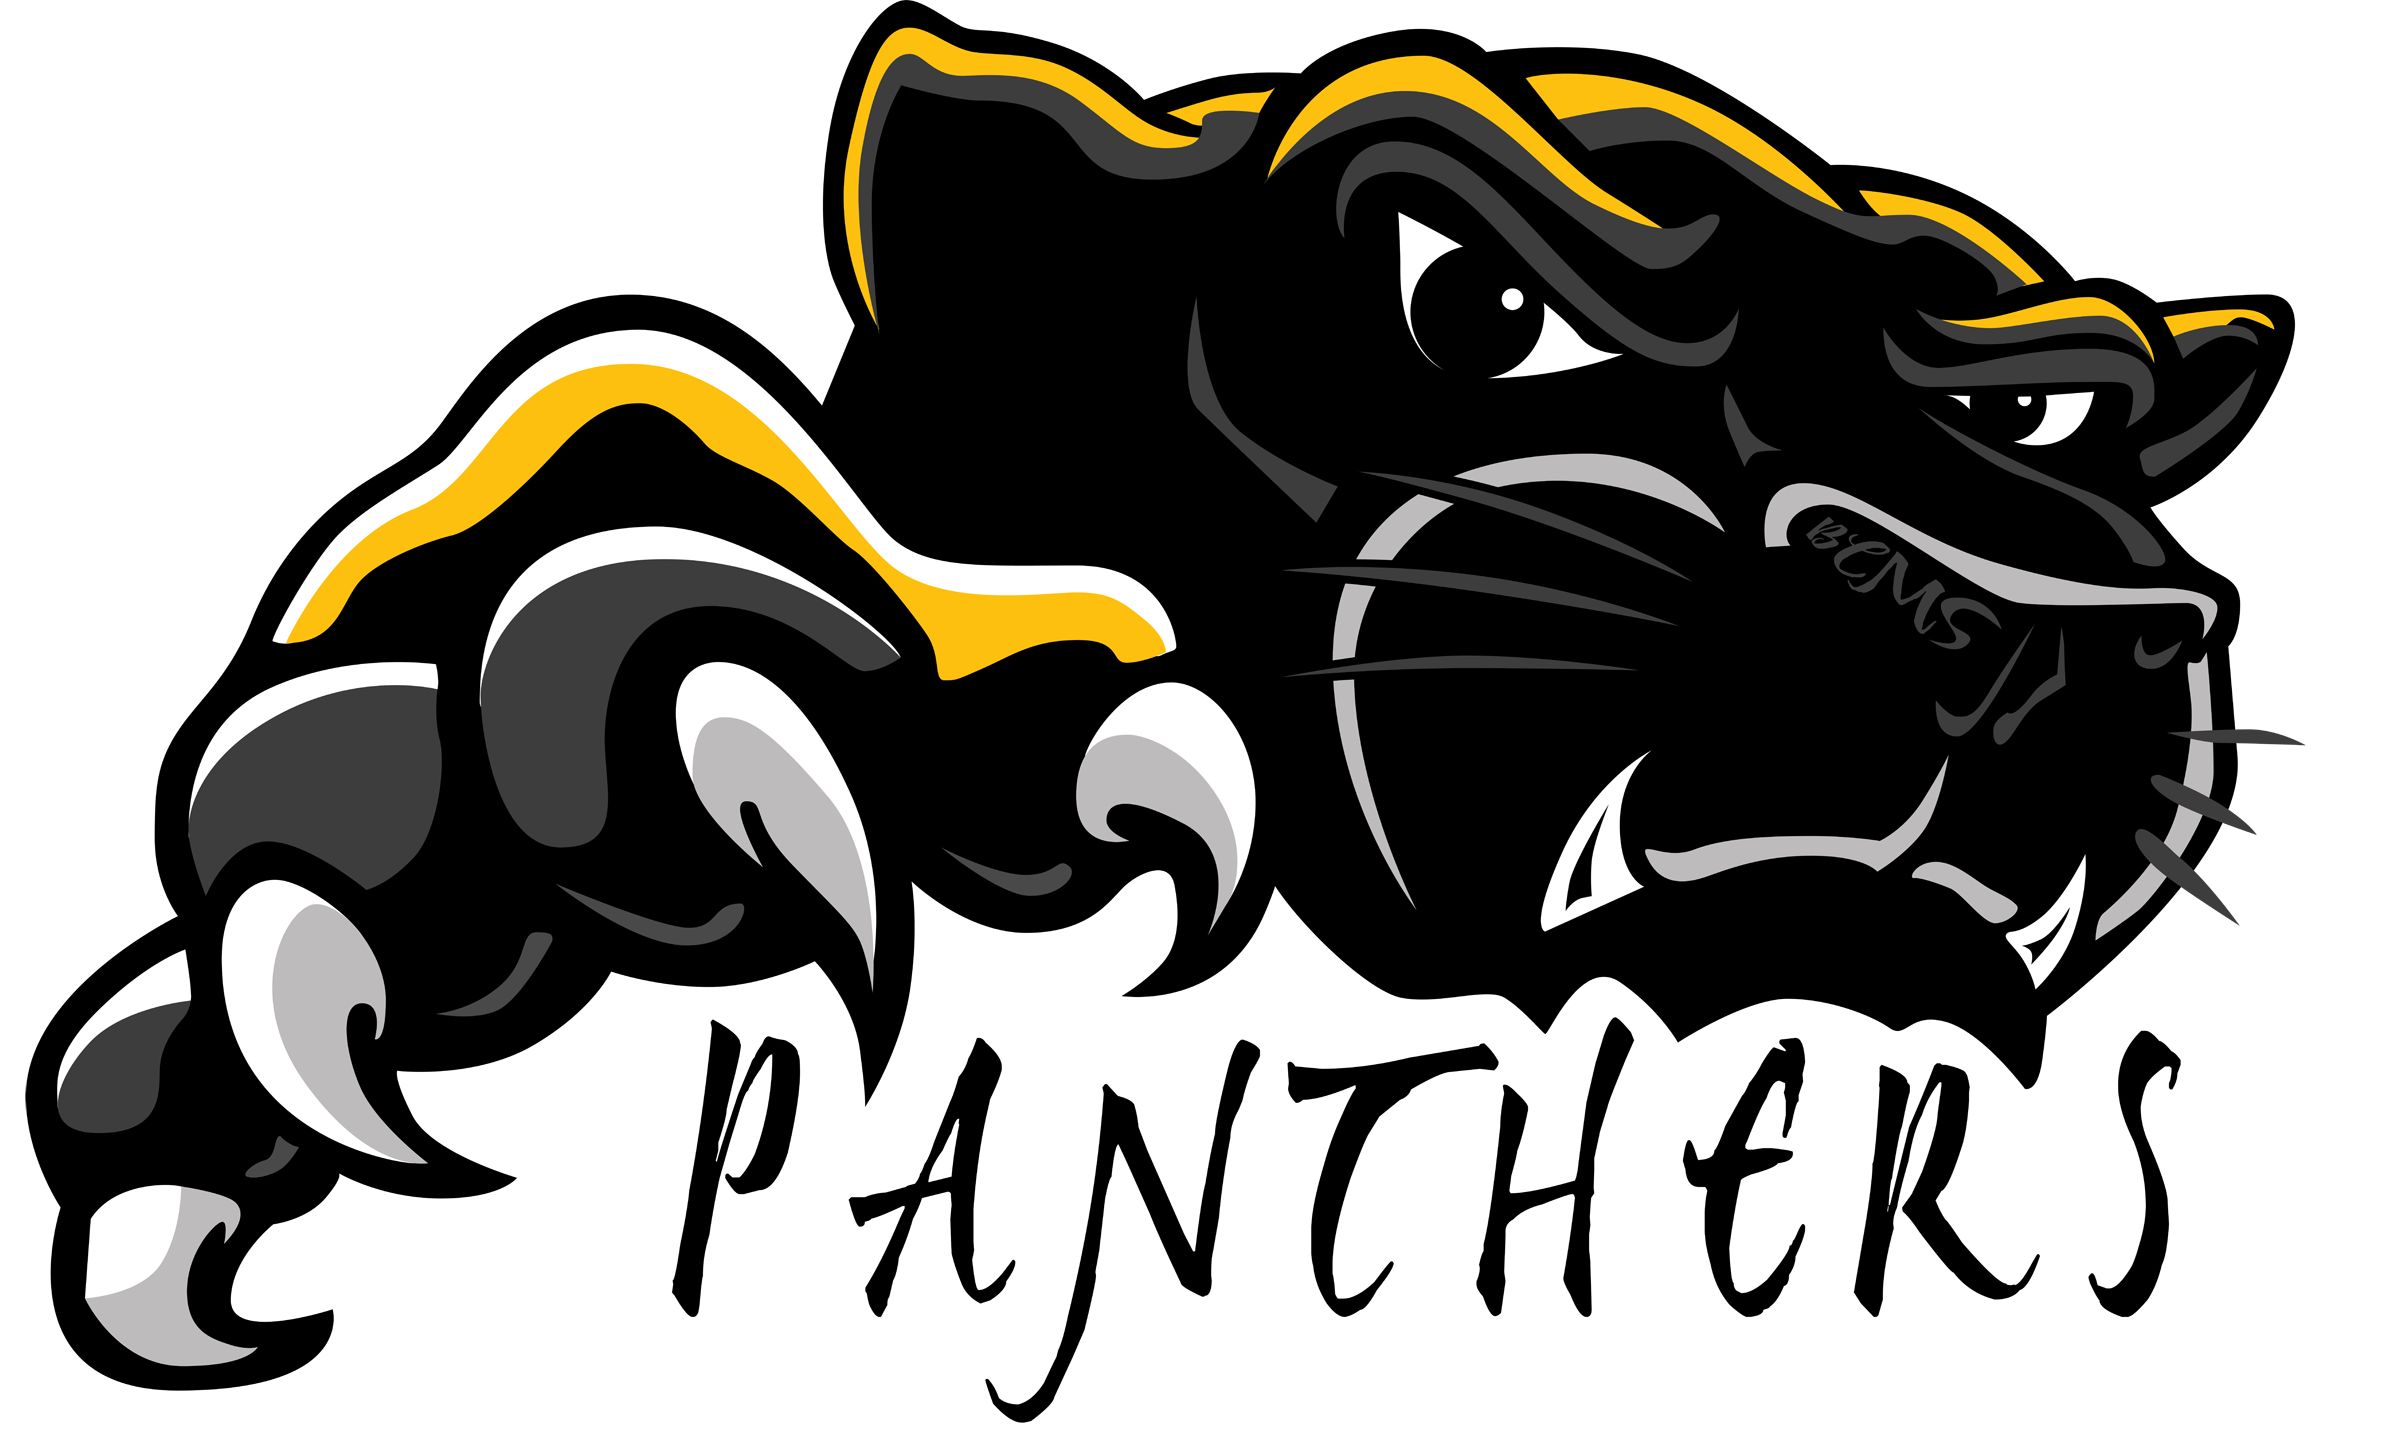 Panther clipart animated, Panther animated Transparent FREE.